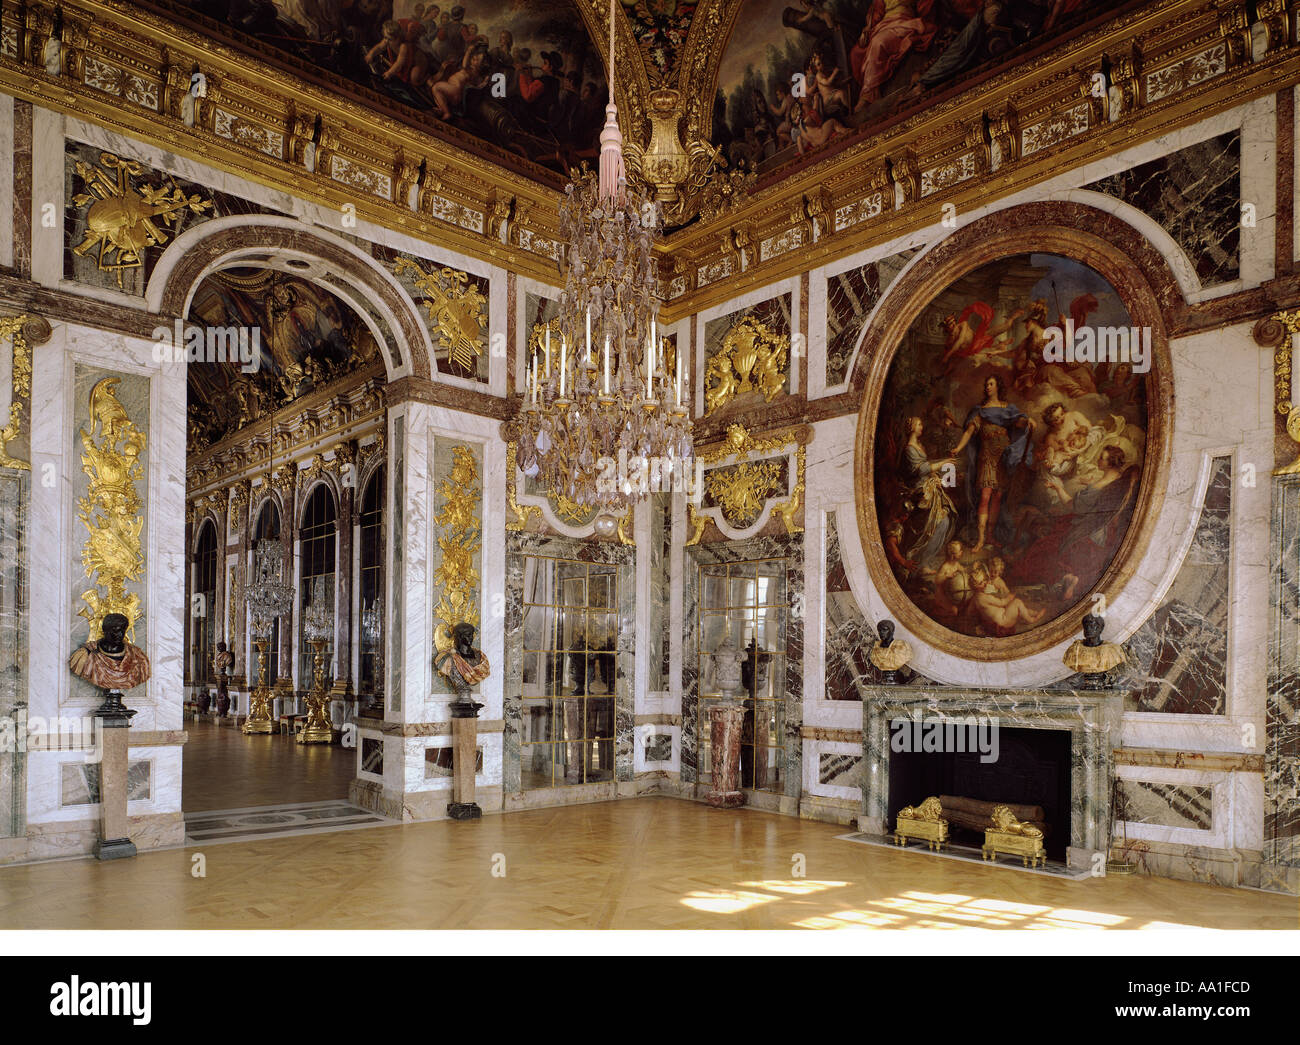 palace of versailles salon de la paix stock photo royalty